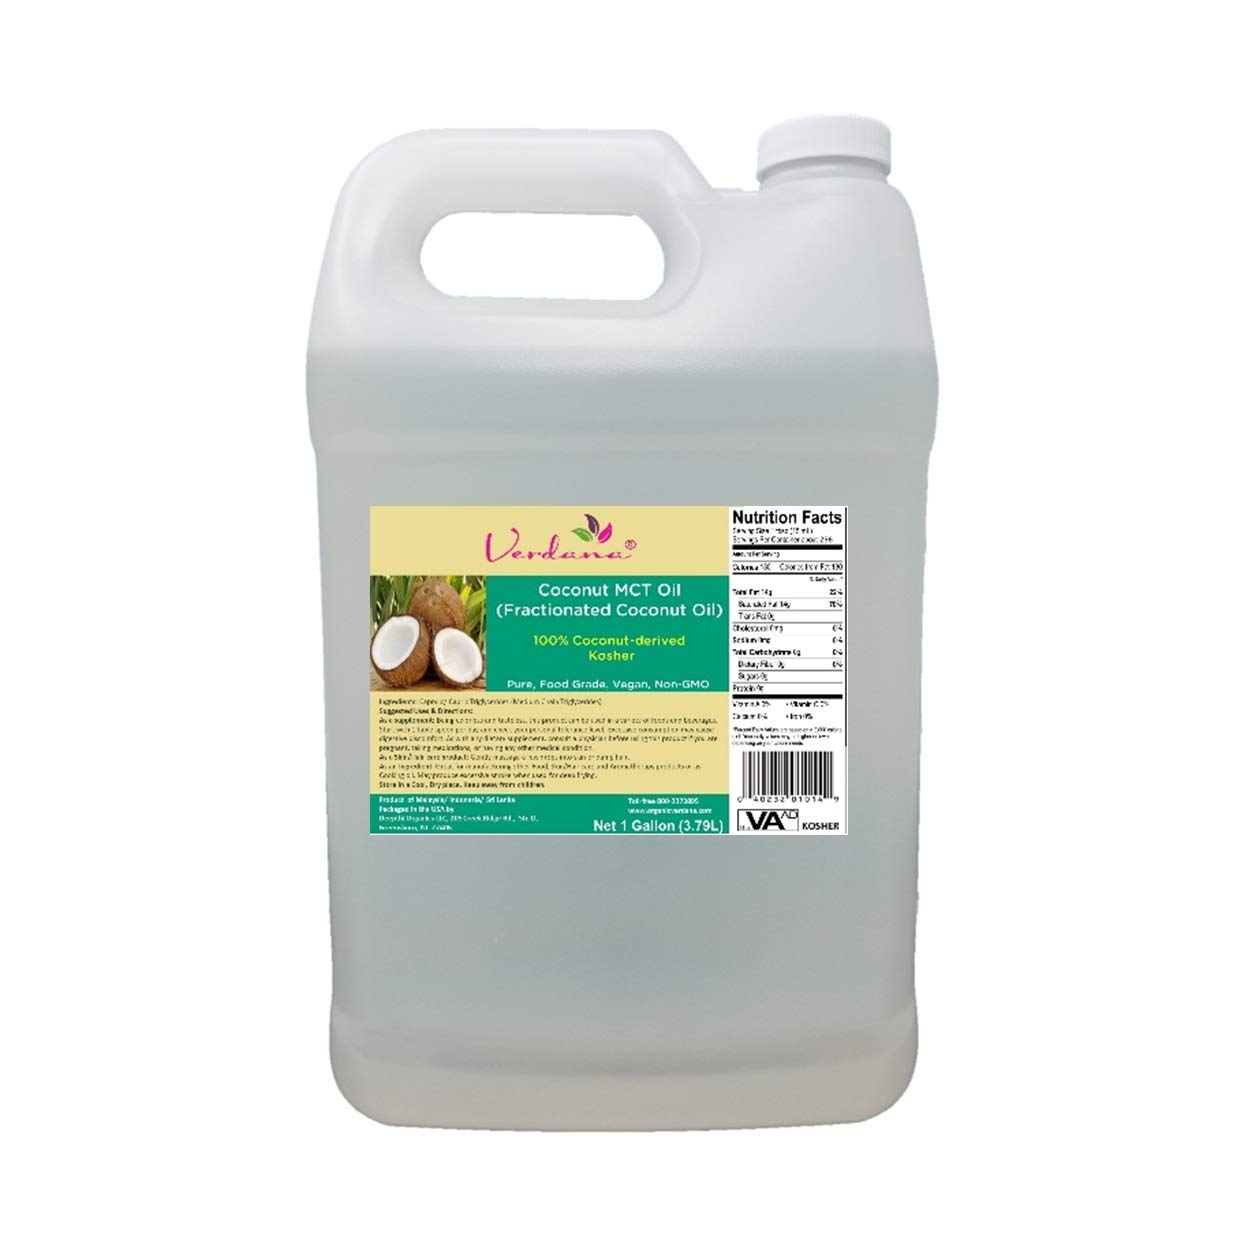 Verdana Coconut MCT Oil - Fractionated Coconut Oil - 1 Gallon – Food Grade - Genuine 100% from Coconut - Only C8 & C10 – for Keto, Paleo, Sports Nutrition, Aromatherapy, Massage, Tinctures